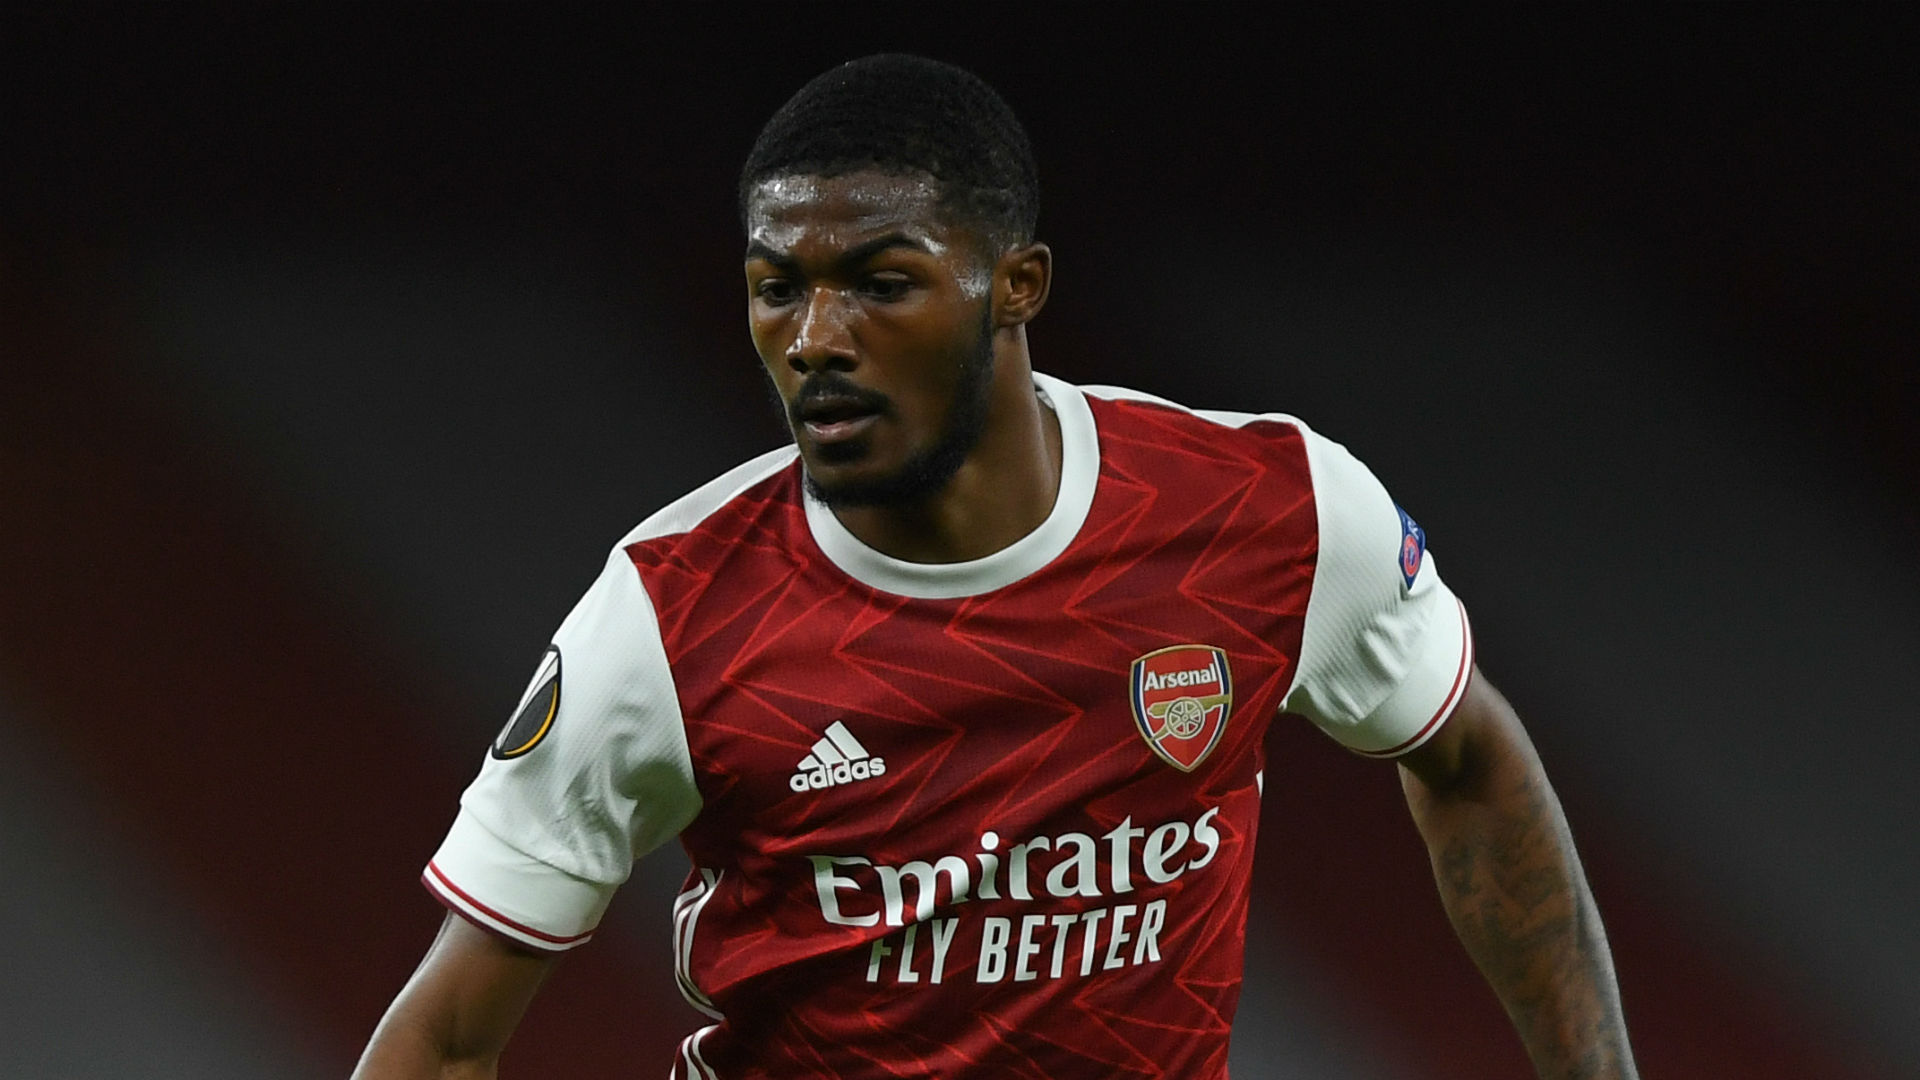 'Maitland-Niles will seek Arsenal exit in 2021' – Campbell sees lack of game time forcing transfer